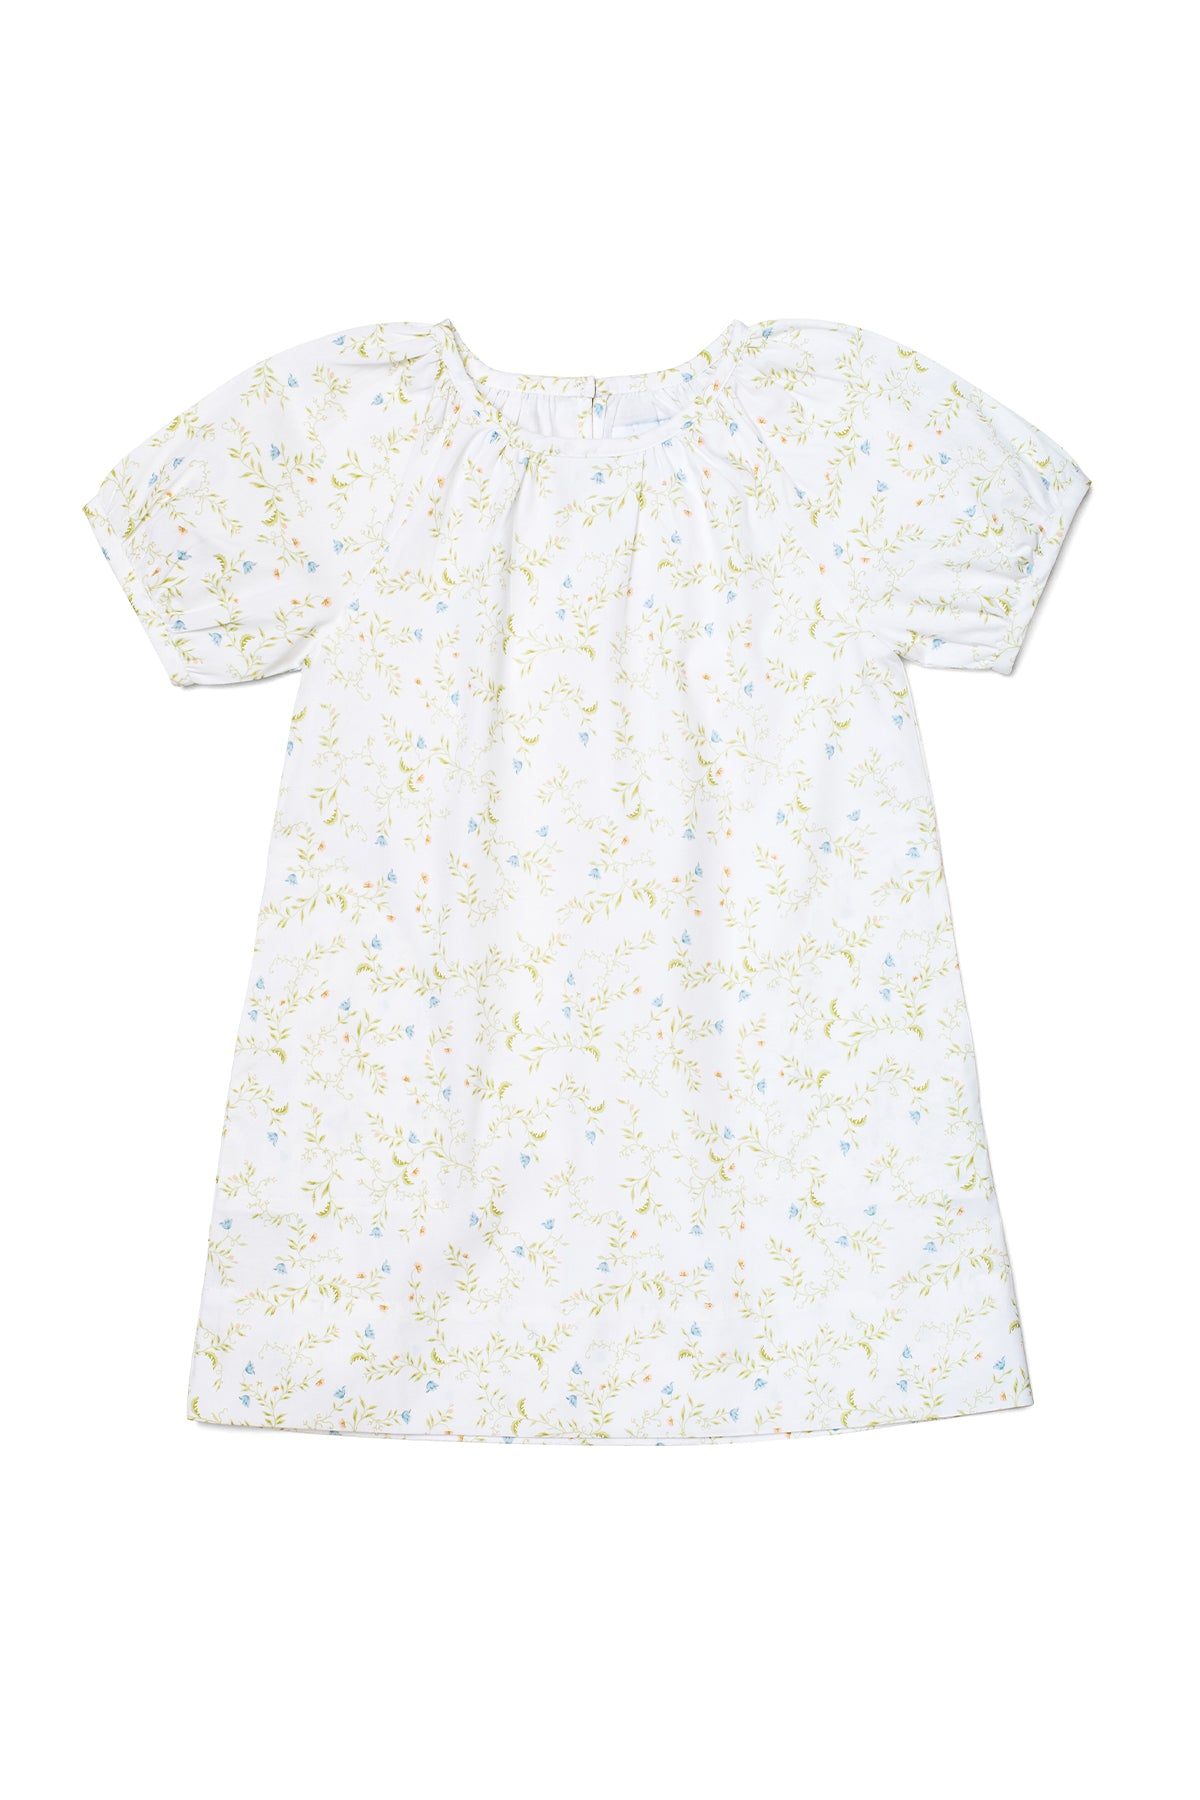 JB x LAKE Kids Gathered Sleeve Dress in Spring Vine